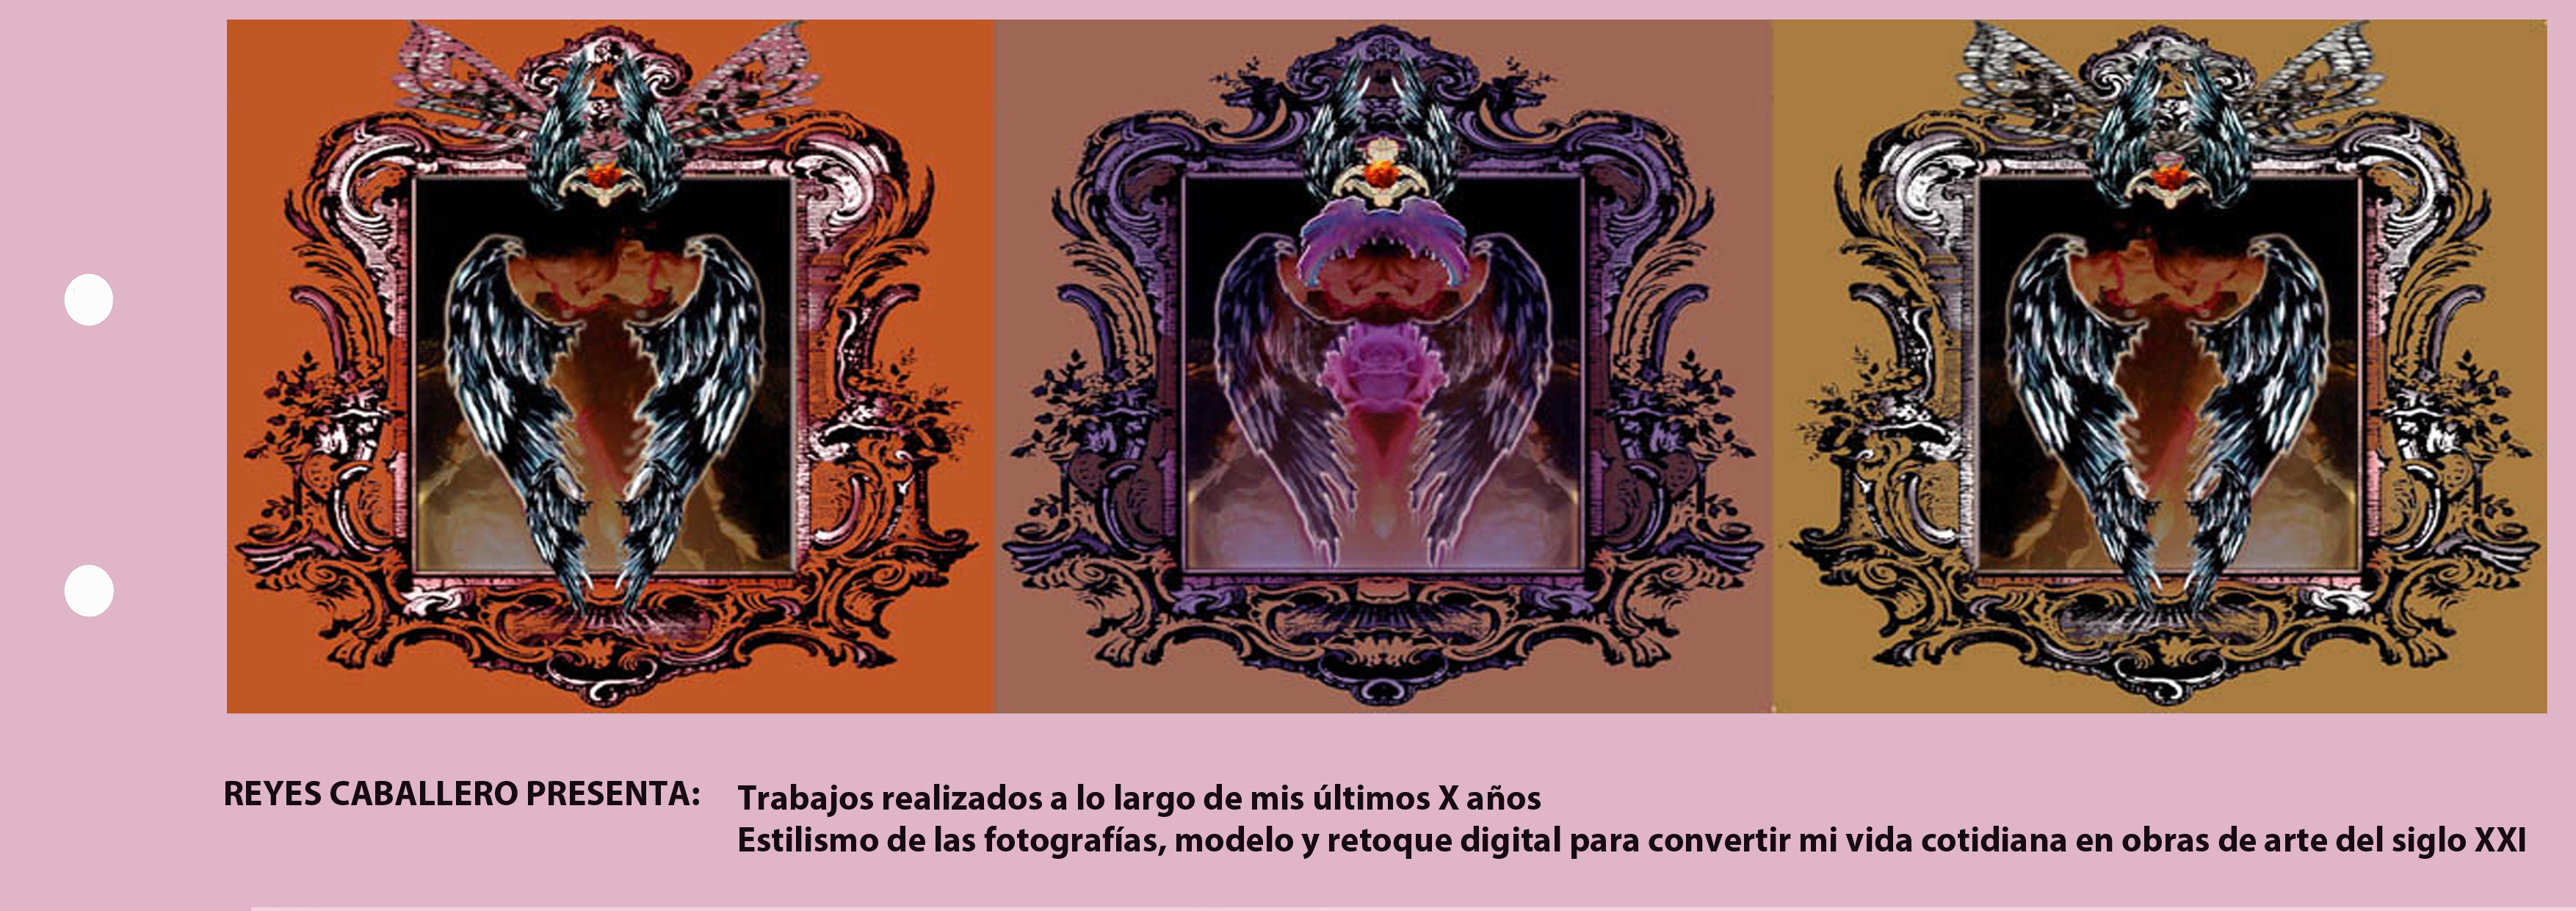 1-catalogo-INTRODUCCION-1.jpg